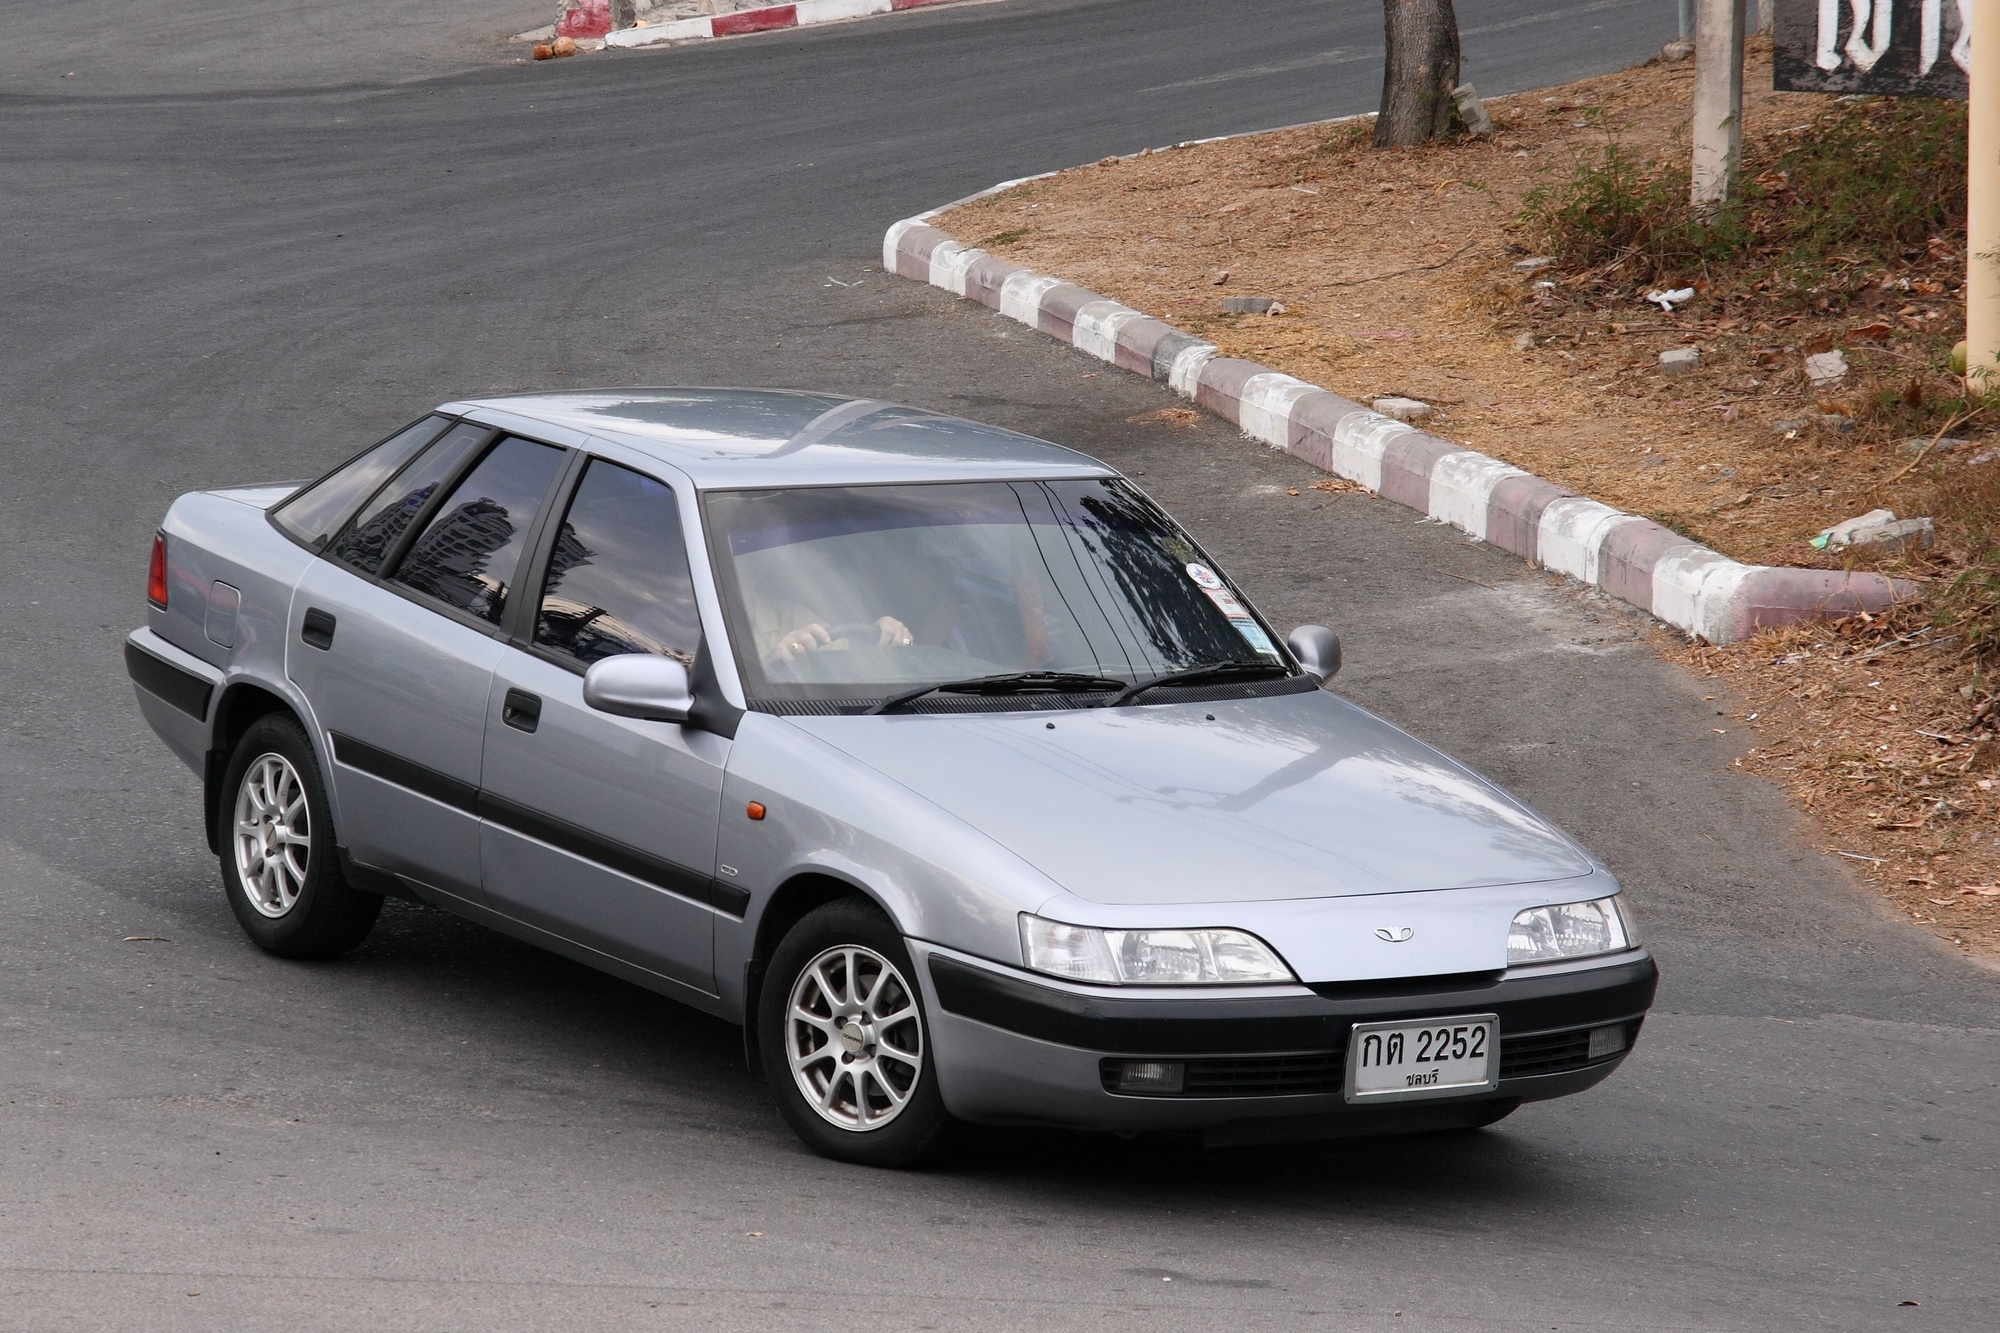 File:Daewoo Espero in Thailand.JPG - Wikimedia Commons